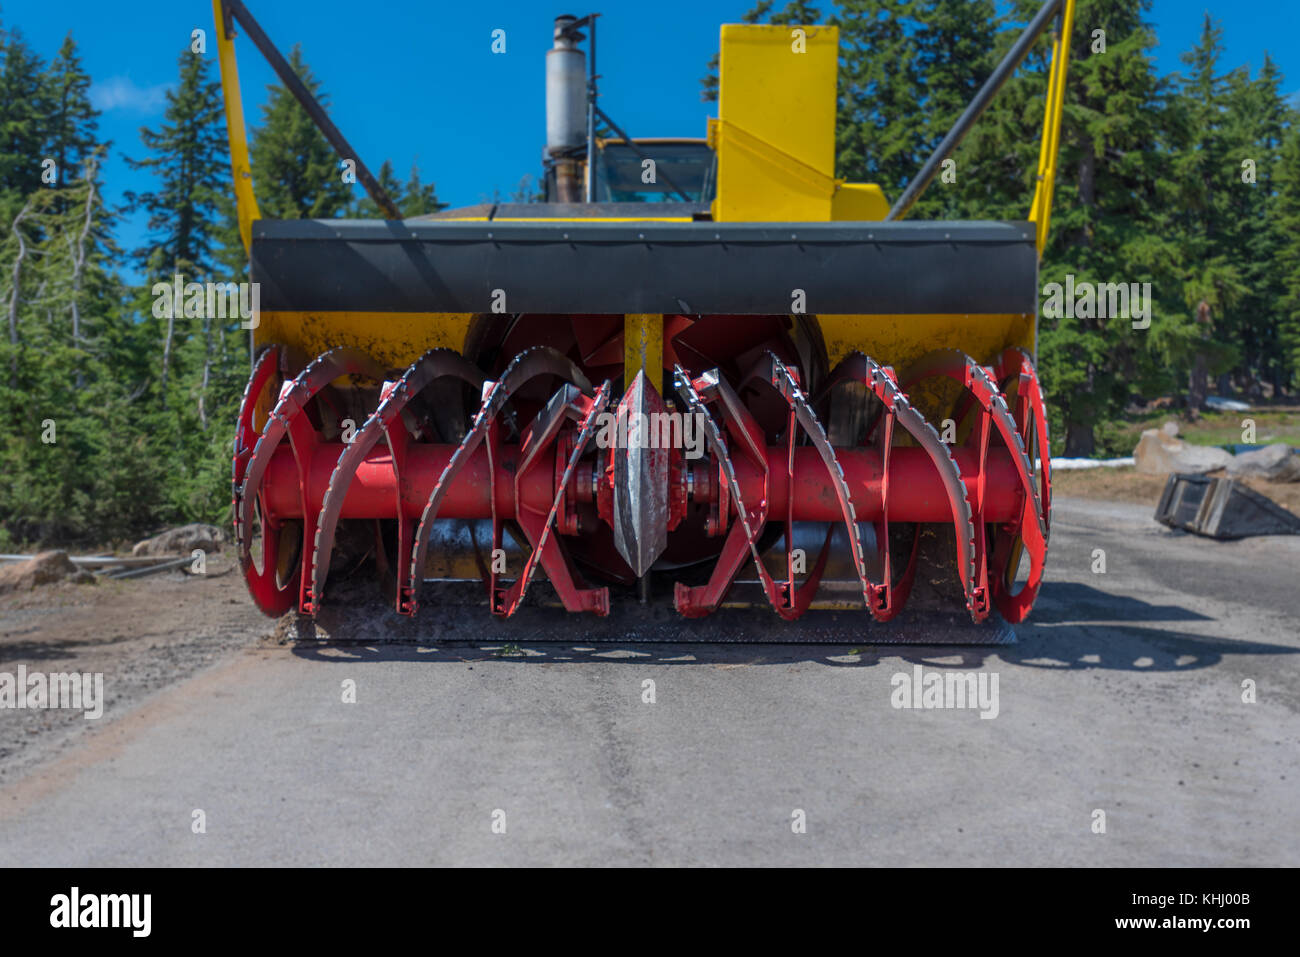 Low Angle View of Red Snow Blower Blades - Stock Image